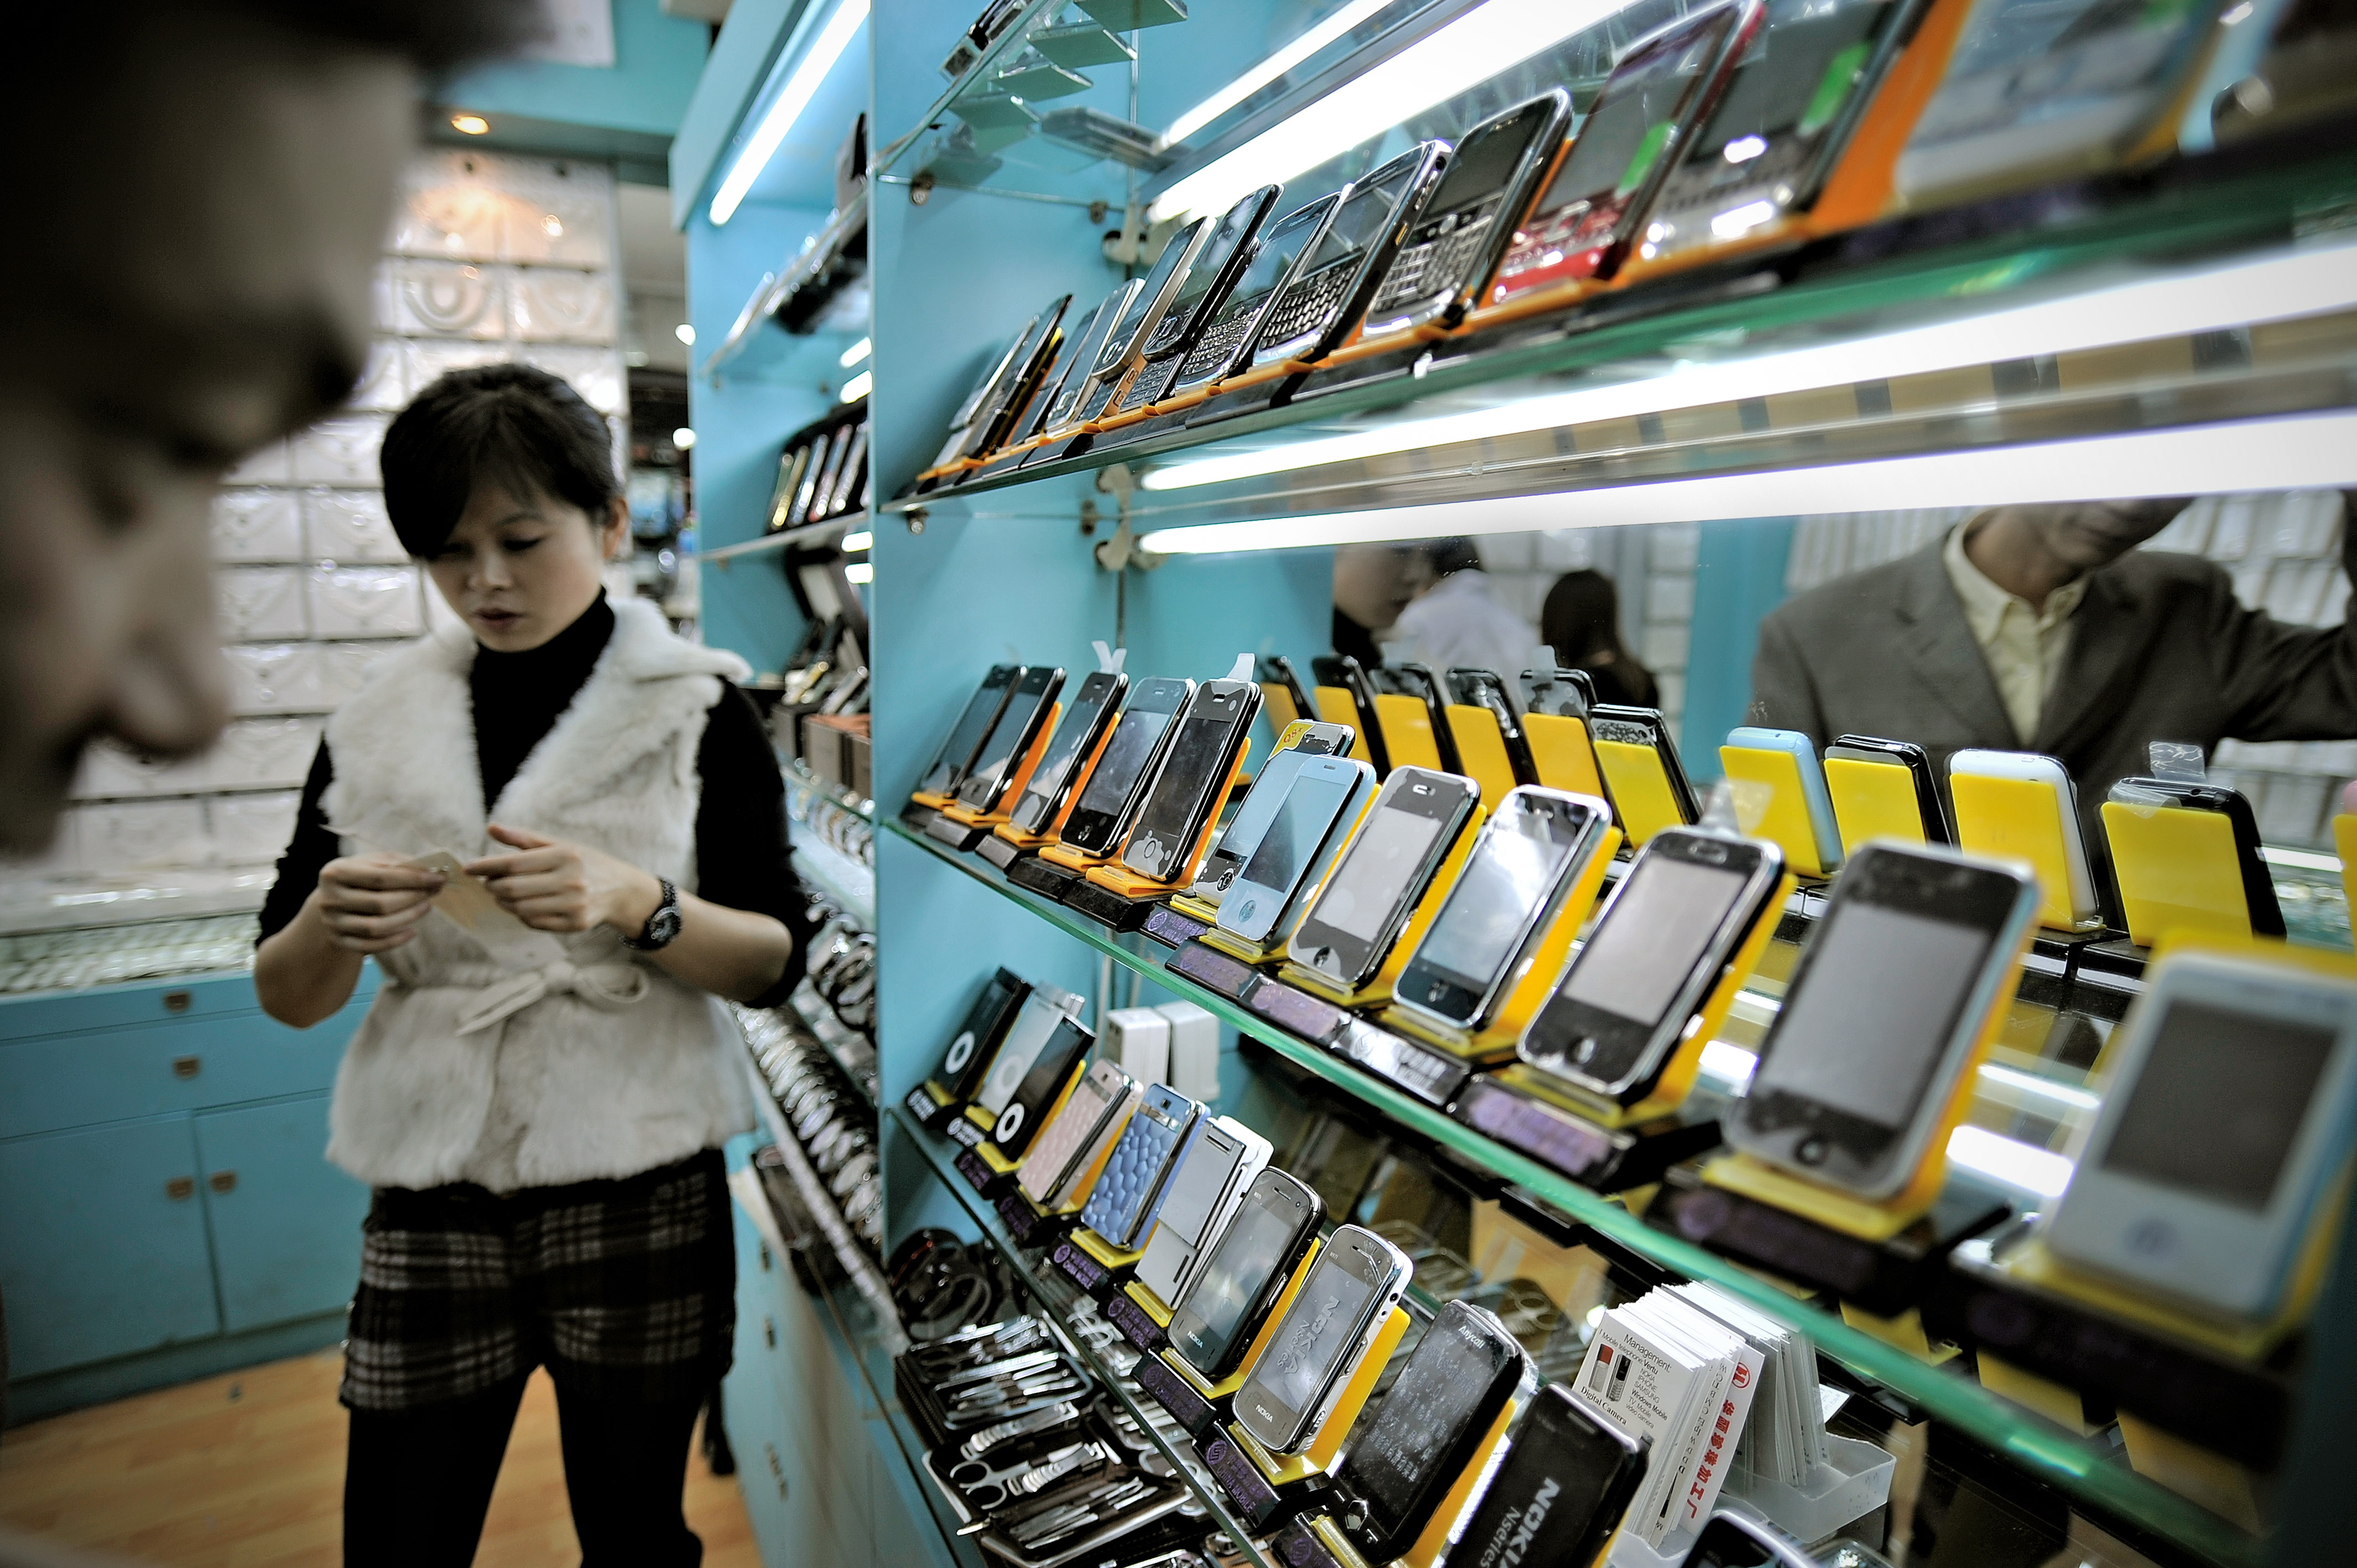 A man looking at fake iPhones displayed in a shop at a market known for counterfeit US goods and housed in the metro station connected to the Science and Technology Museum in Shanghai.